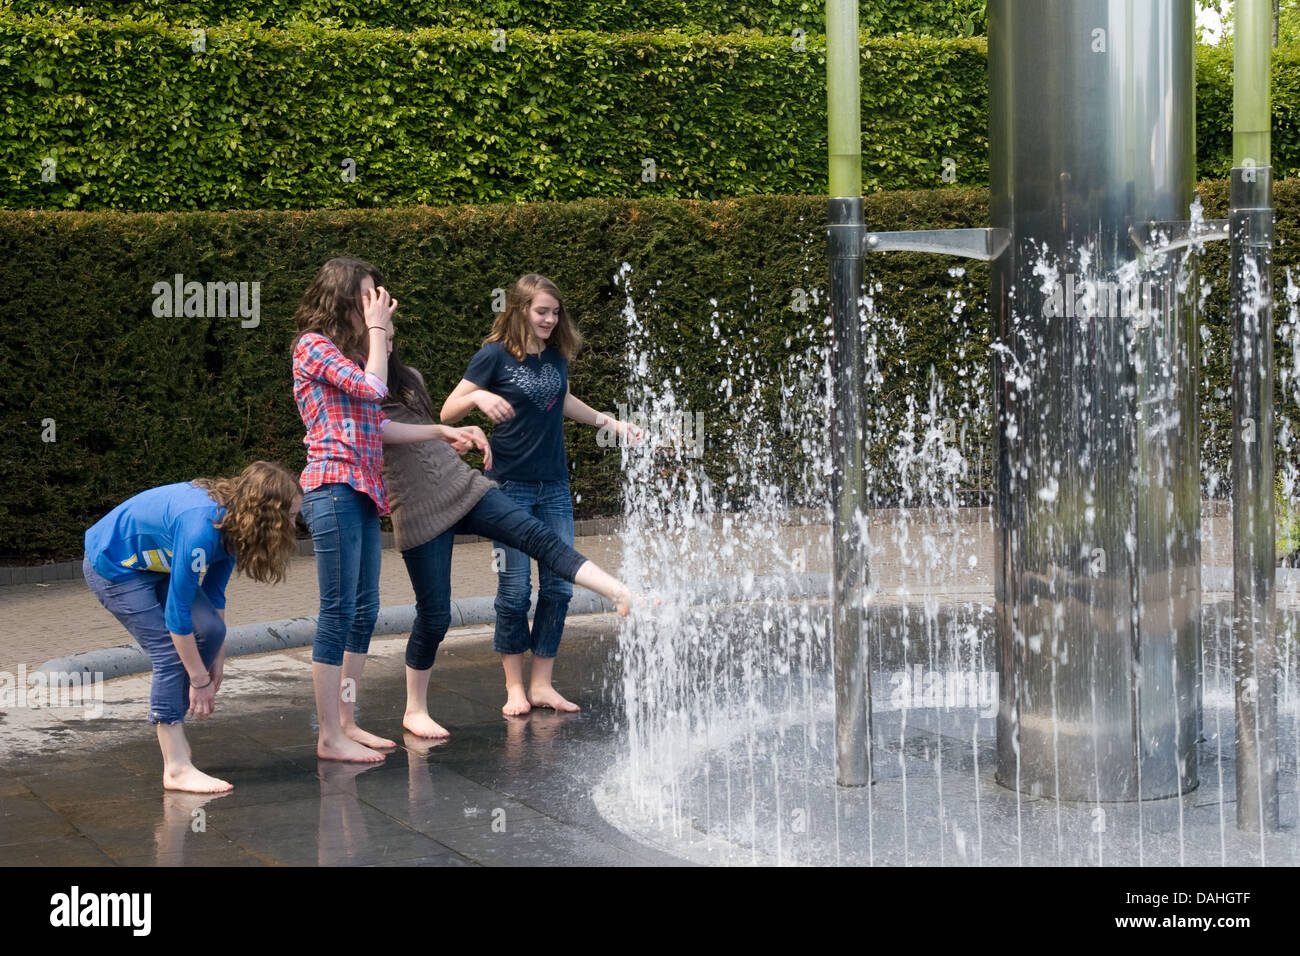 Teenage Girls Play In Water Fountain At Alnwick Castle